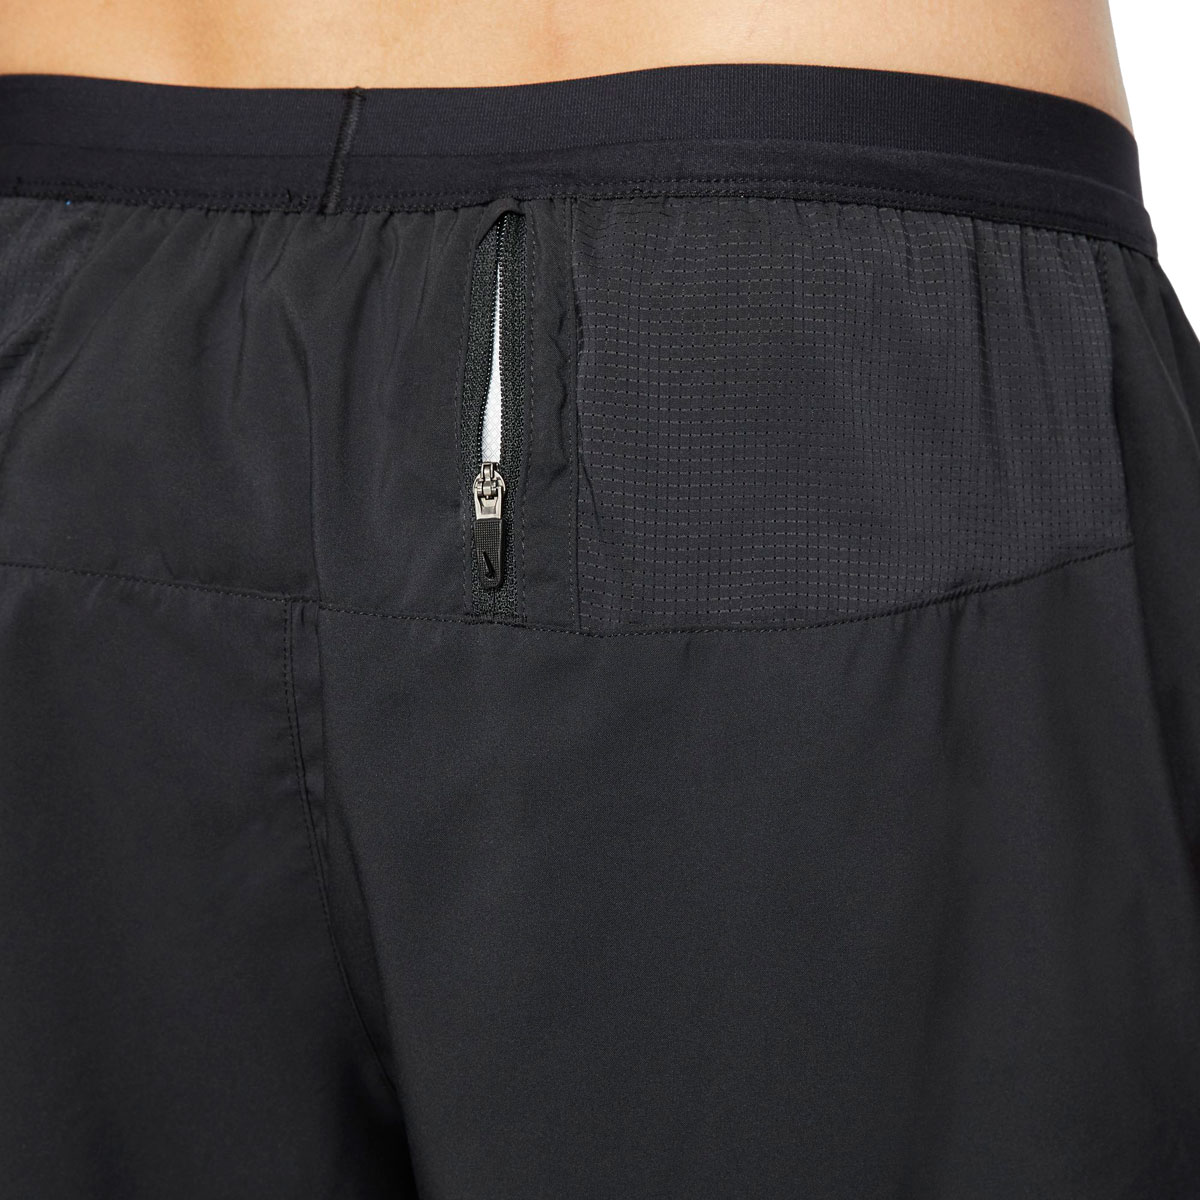 "Men's Nike Flex Stride 5"" Brief Running Shorts, , large, image 4"